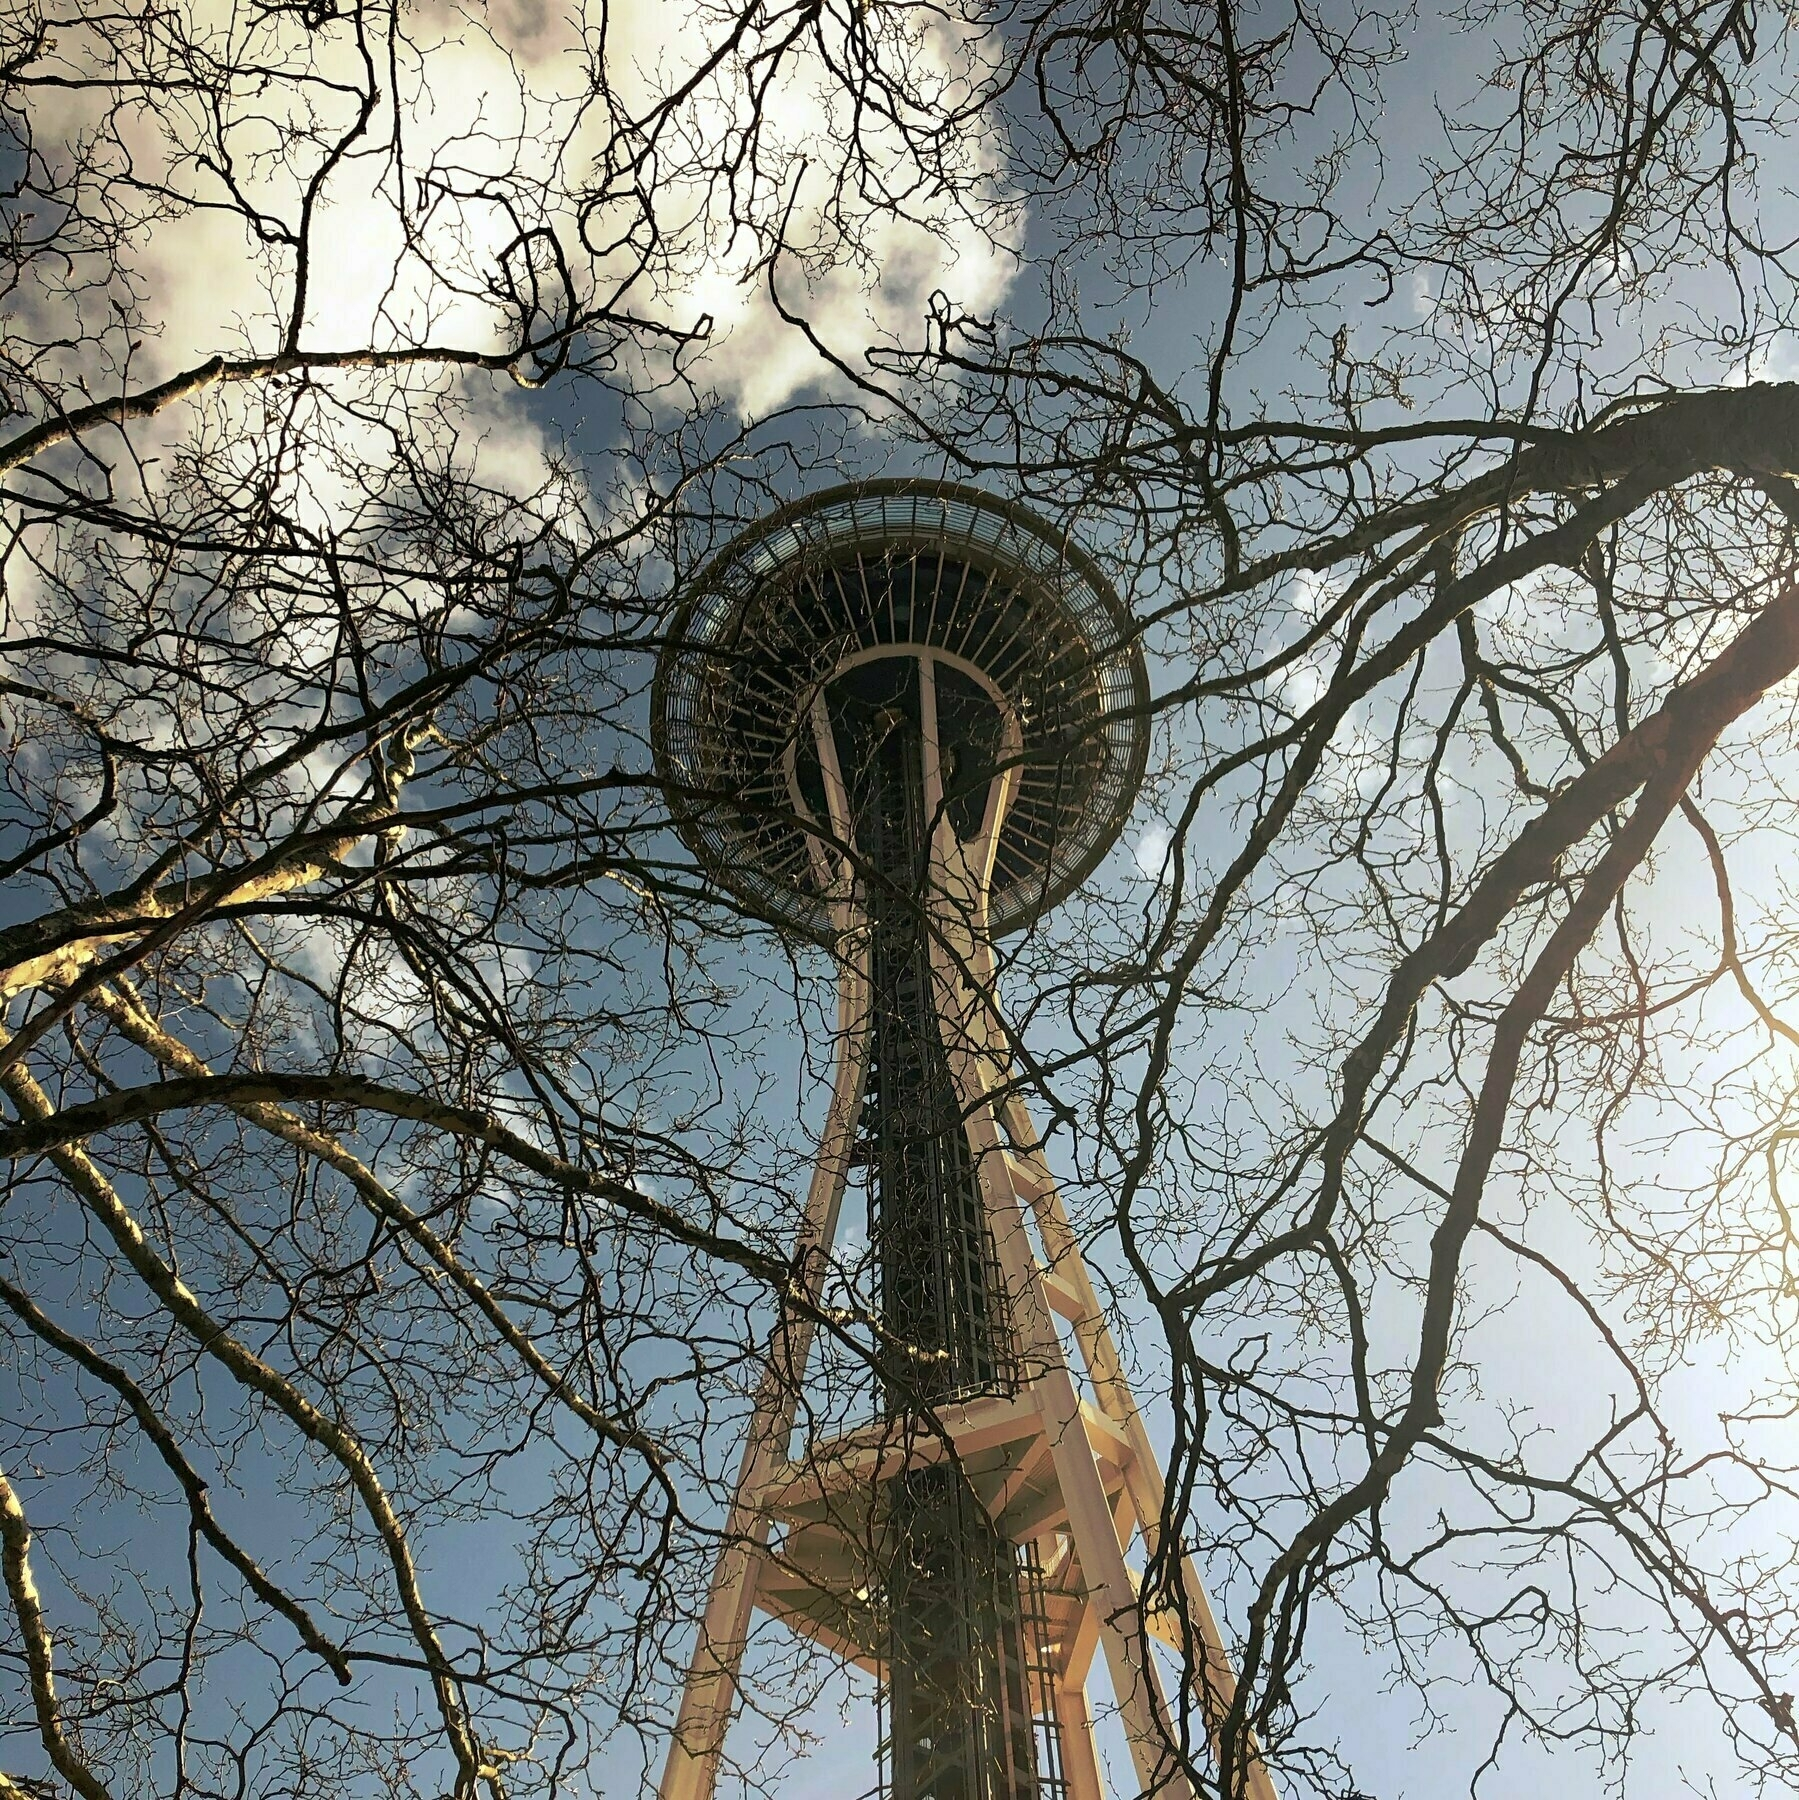 The Space Needle Looms above. Winter branches snake out in front of it.